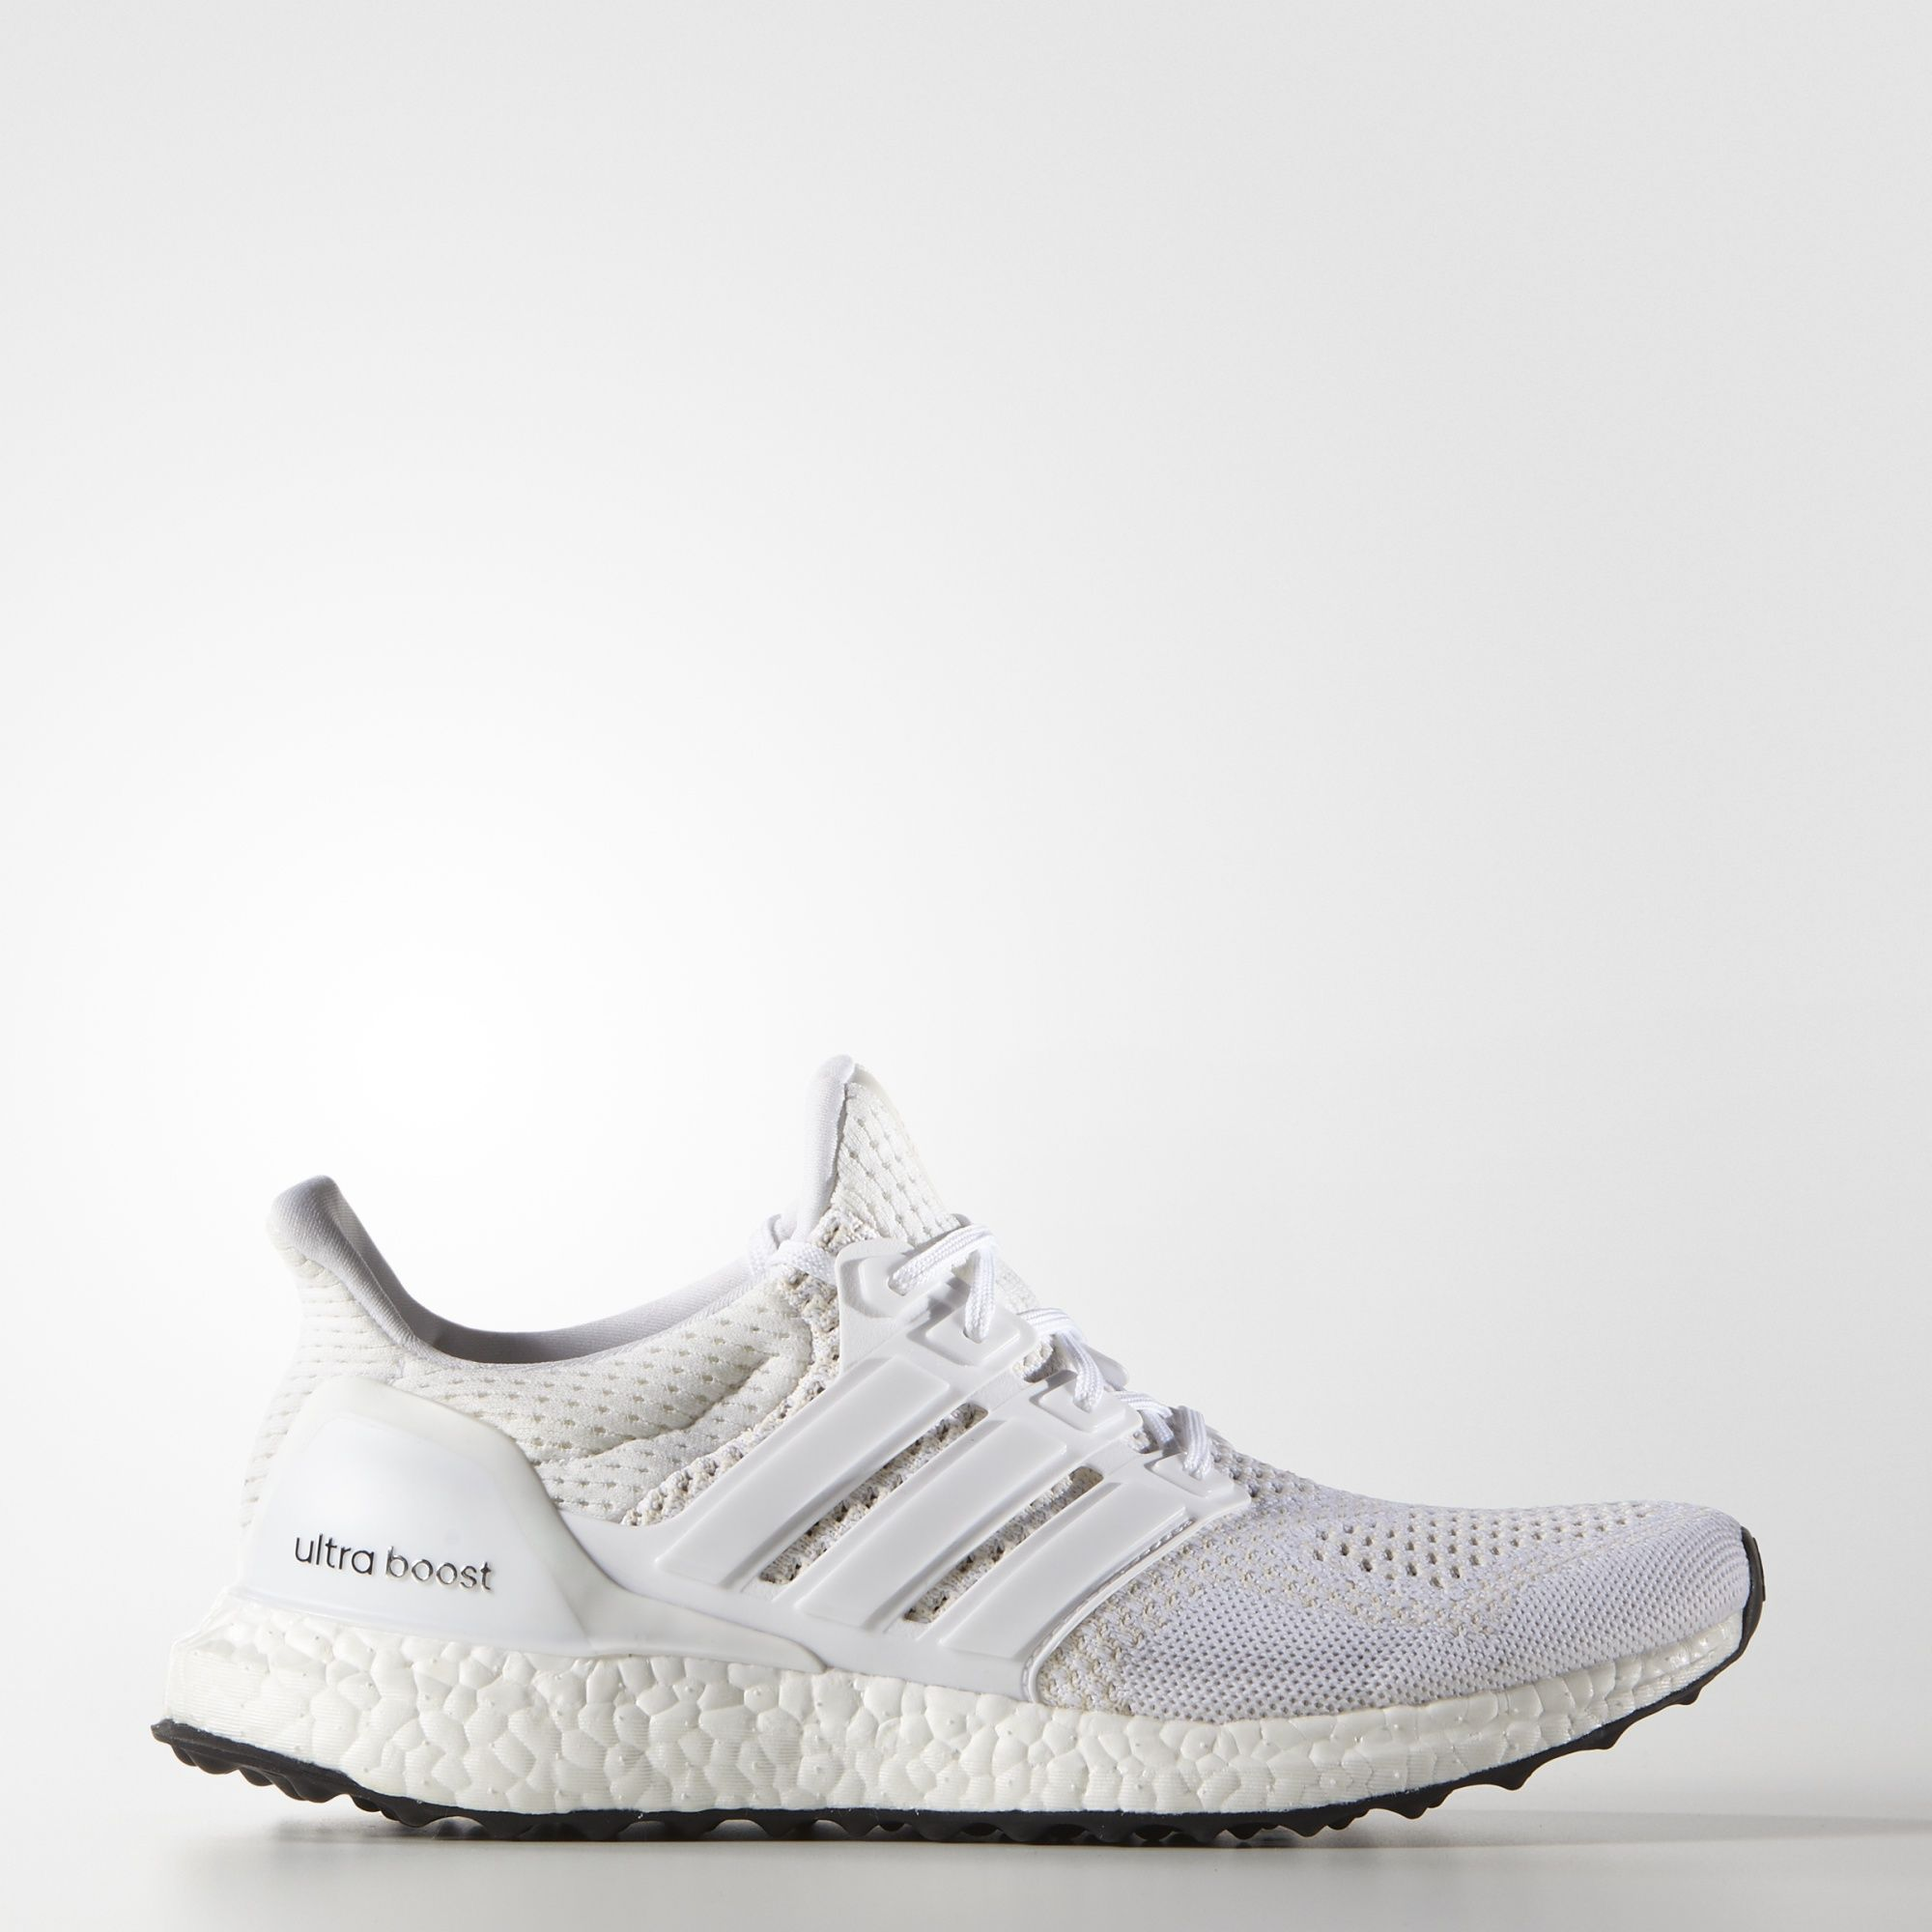 adidas shoes ultra boost all white shoes 618007